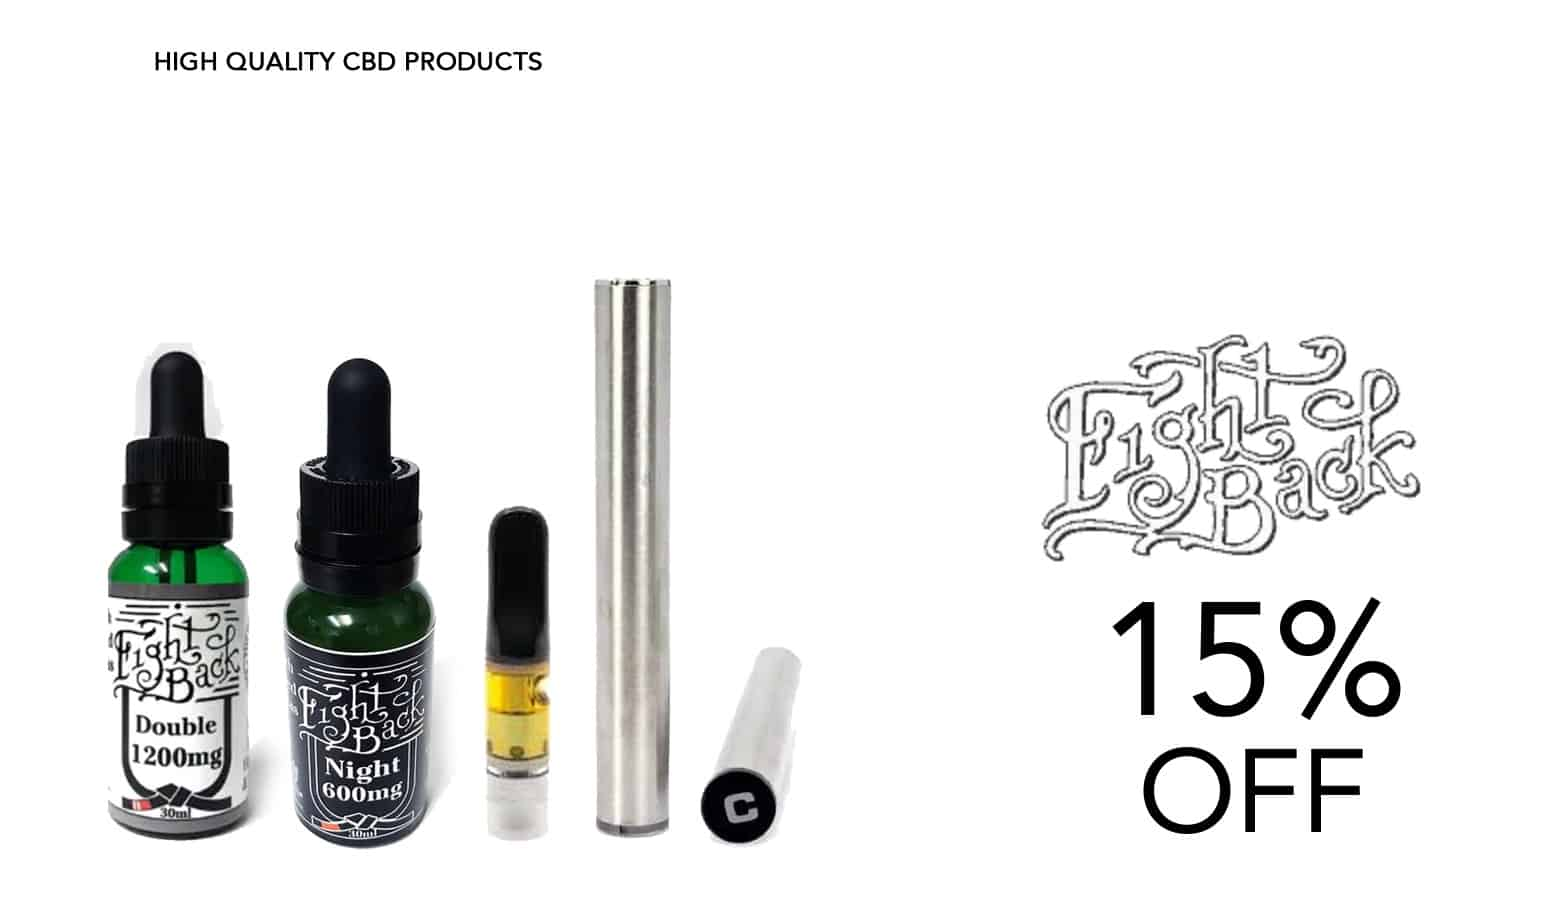 Fightback CBD Coupon Code Offer Website